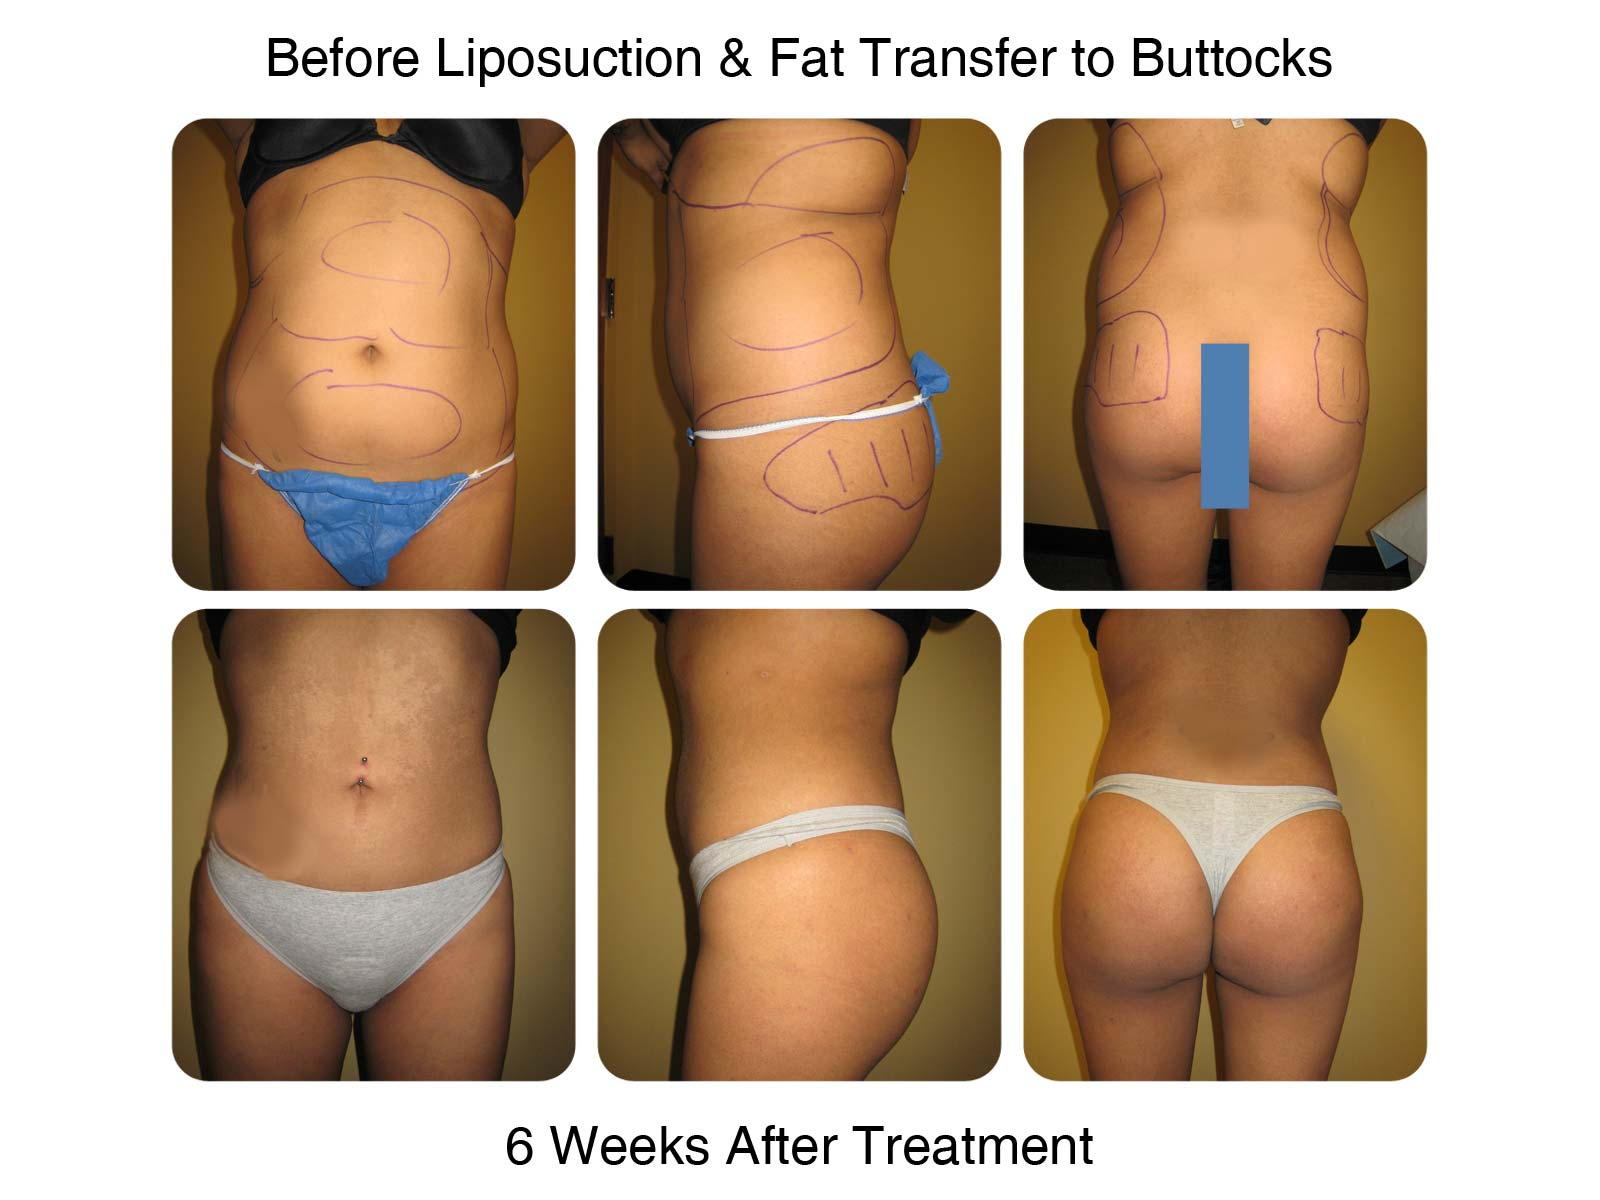 Fat Transfer to Butt Example